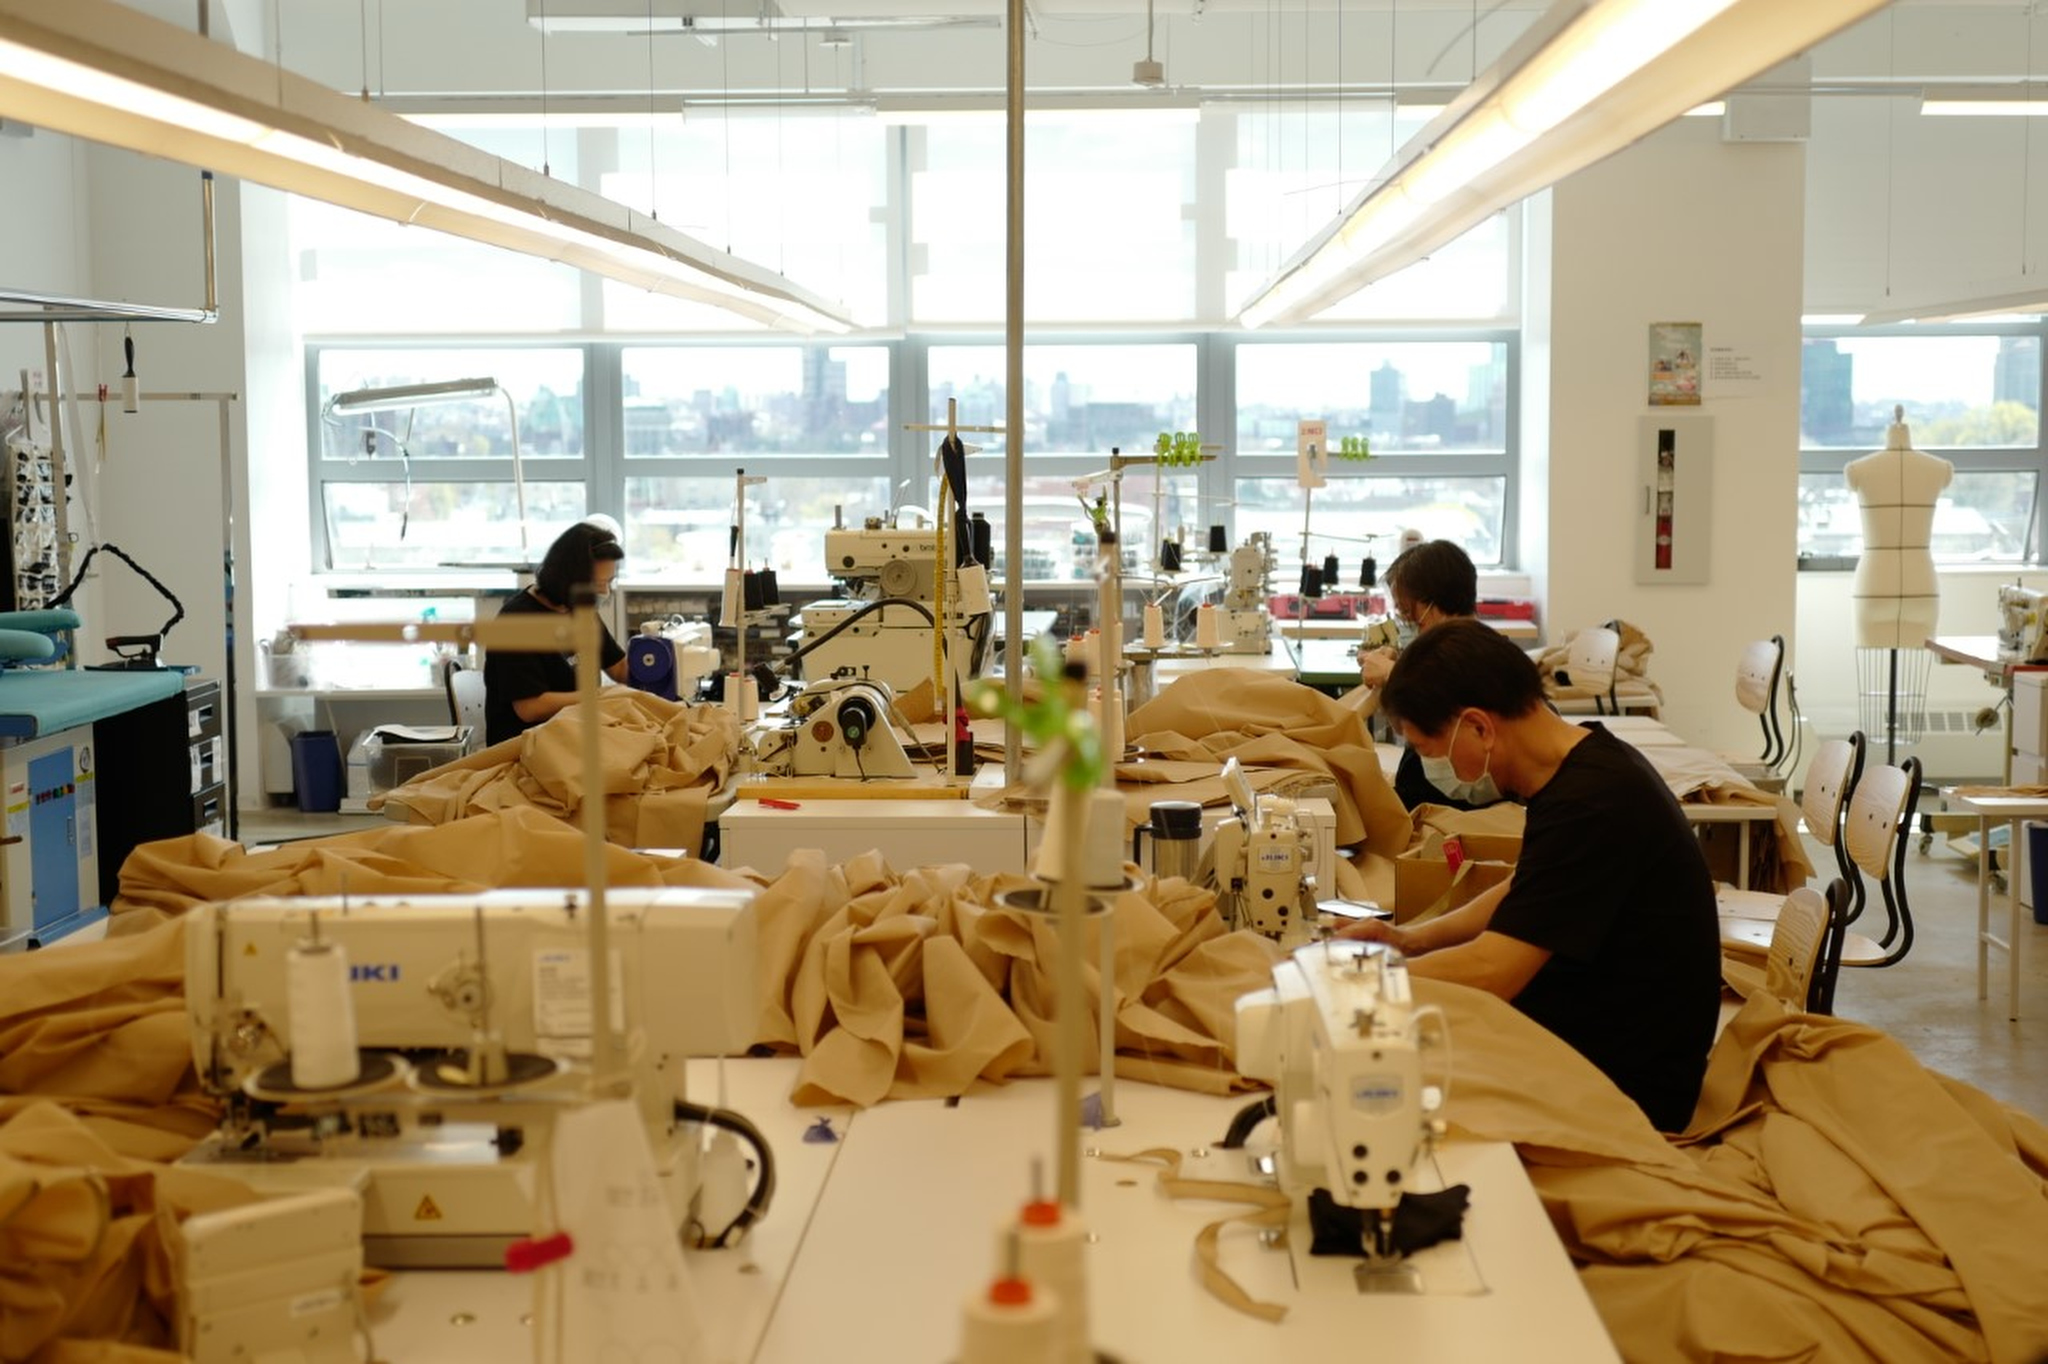 Employees at Lafayette 148 headquarters making hospital gowns, while practicing social distancing.